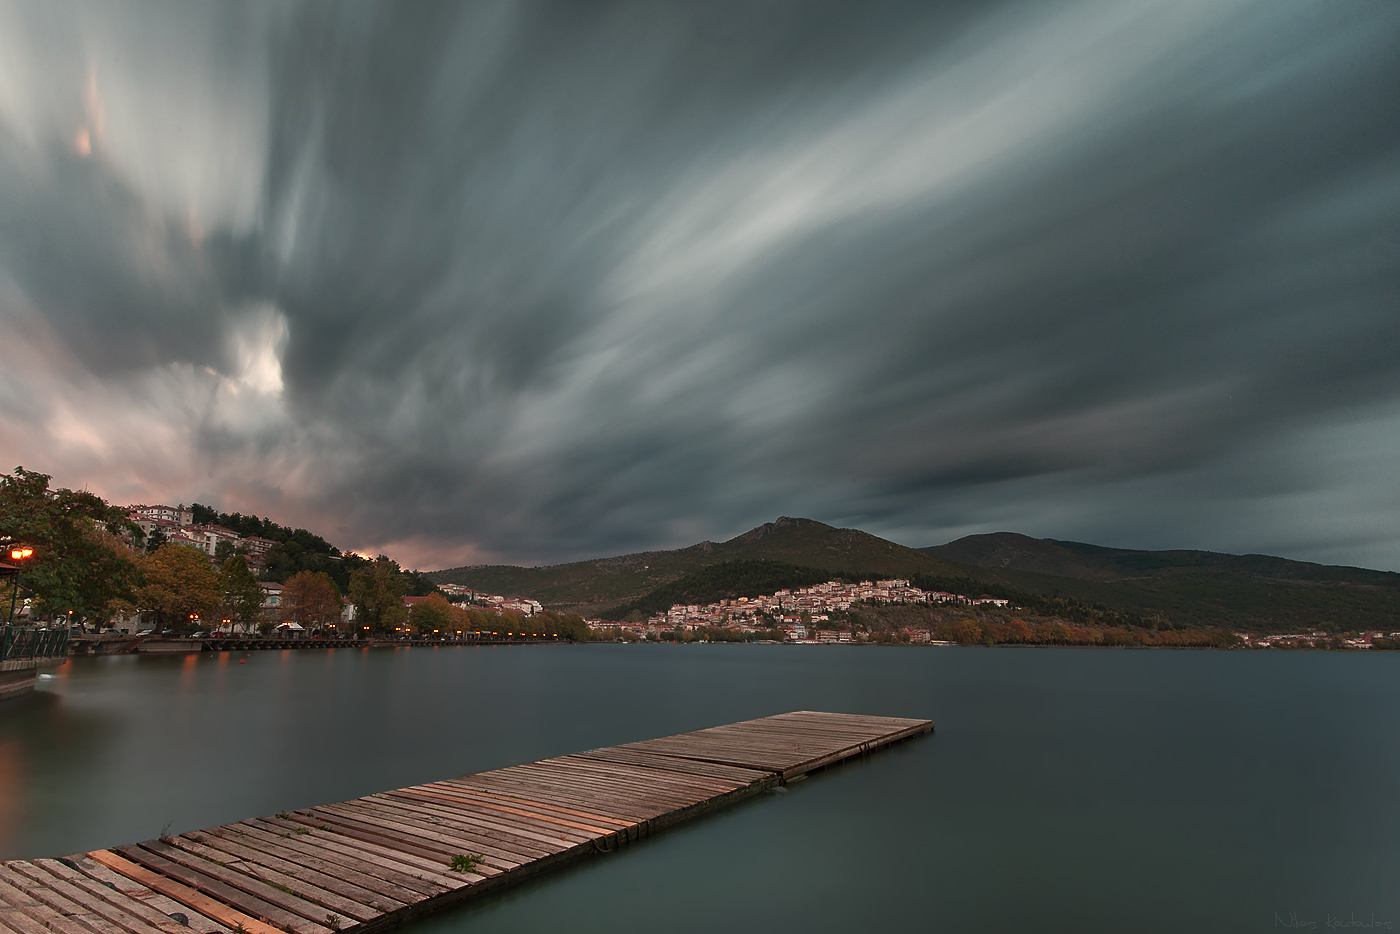 Dark clouds hang over Greece's future. Image by Nikos Koutoulas, via Flickr CC.